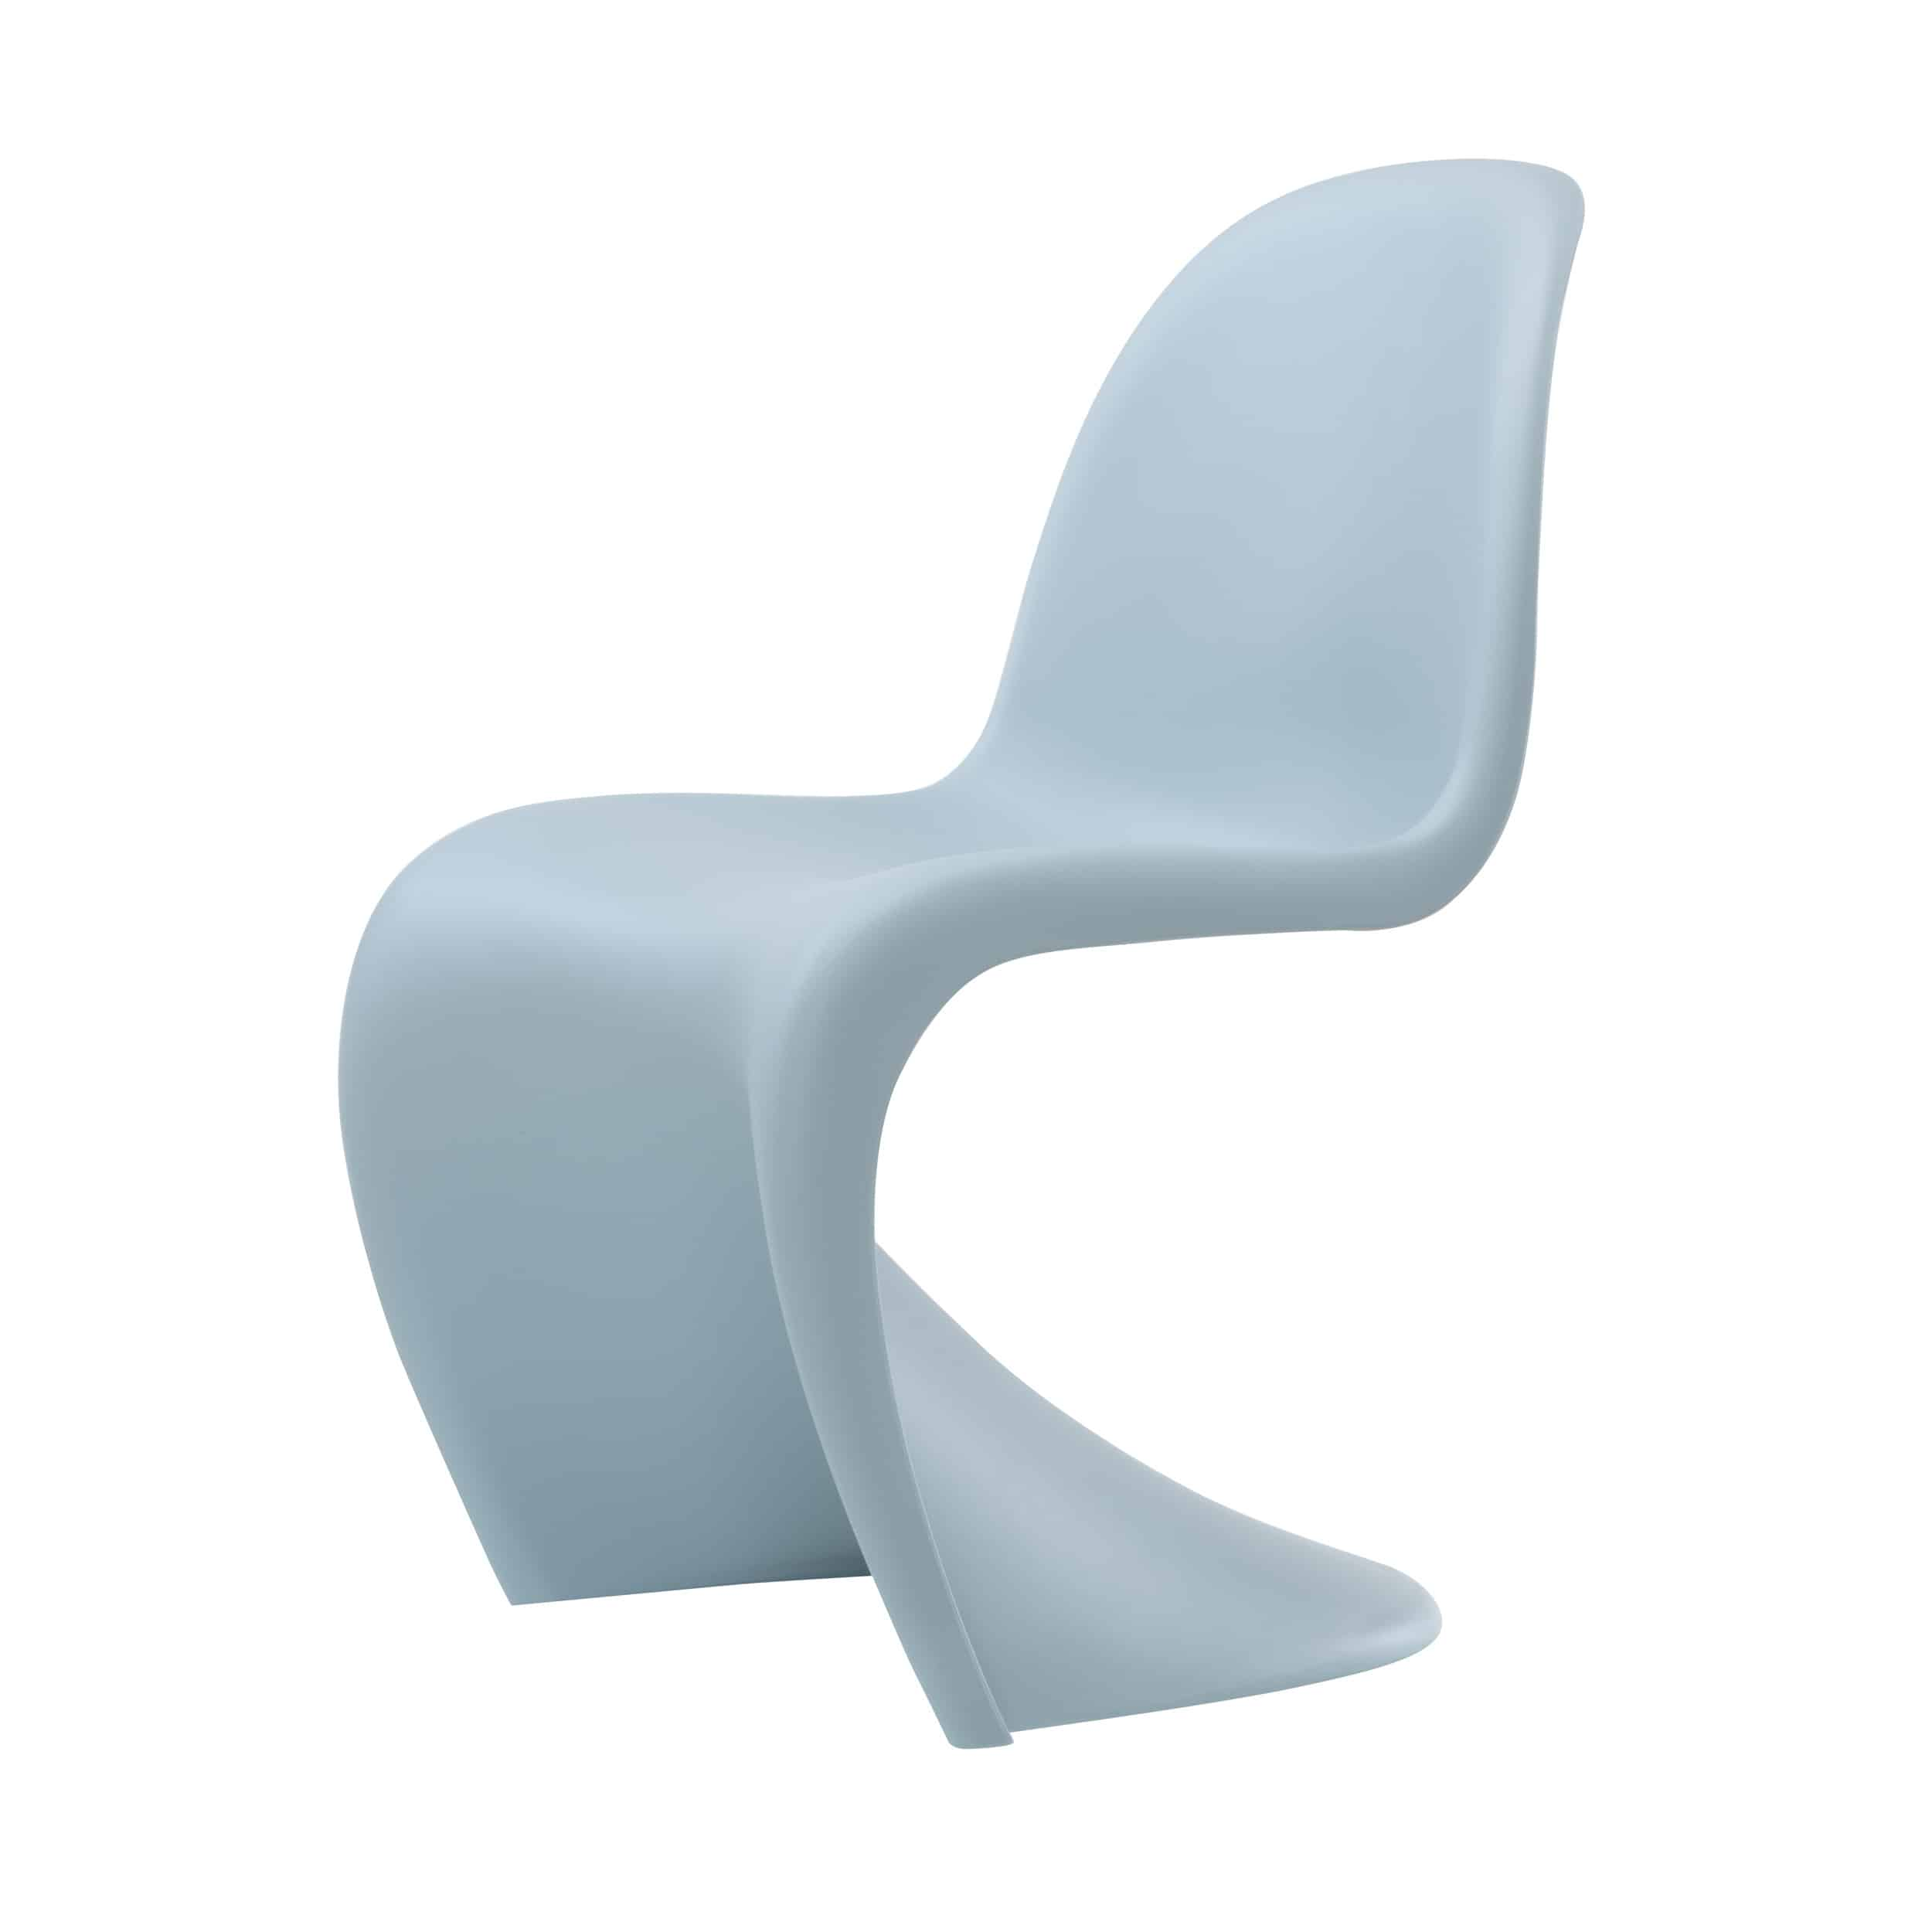 Panton Chair Günstig Panton Chair Stuhl - - A021132.000 | Eames Dining Chair